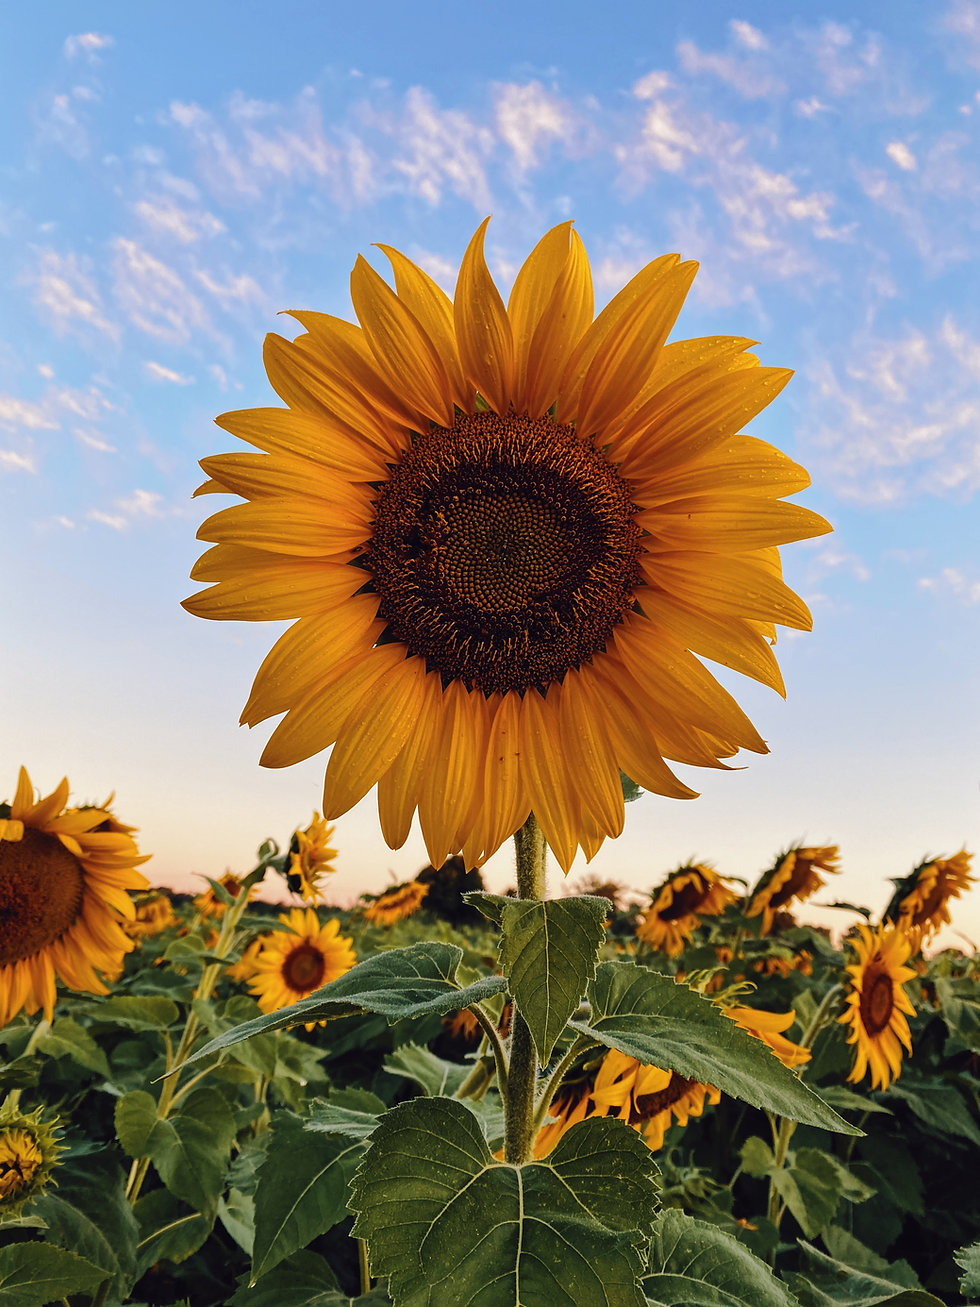 Sunflower in best home care services in Folsom PA 19033